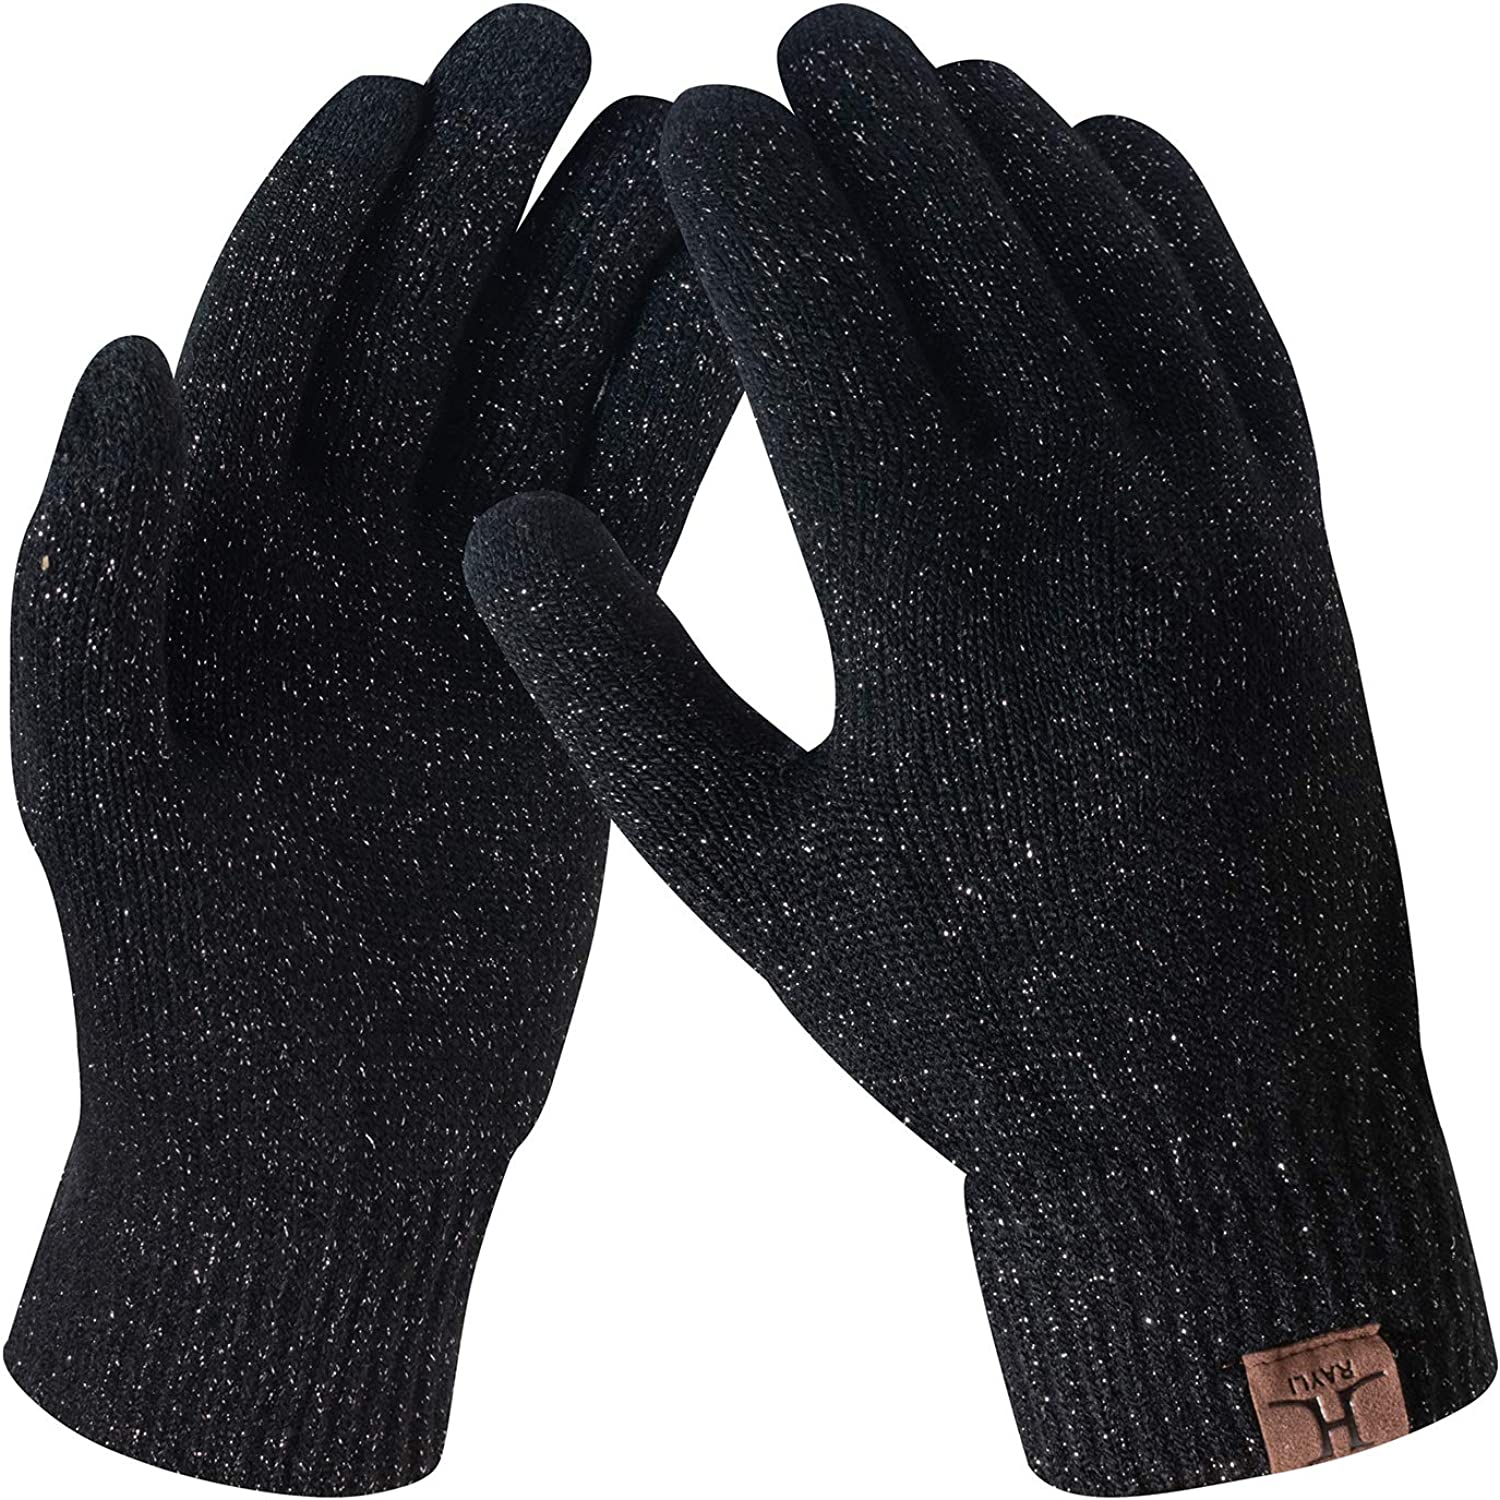 TOUCH SCREEN WINTER KNITTED GLOVES LADIES MENS KIDS FOR SMART PHONE TABLET MAGIC